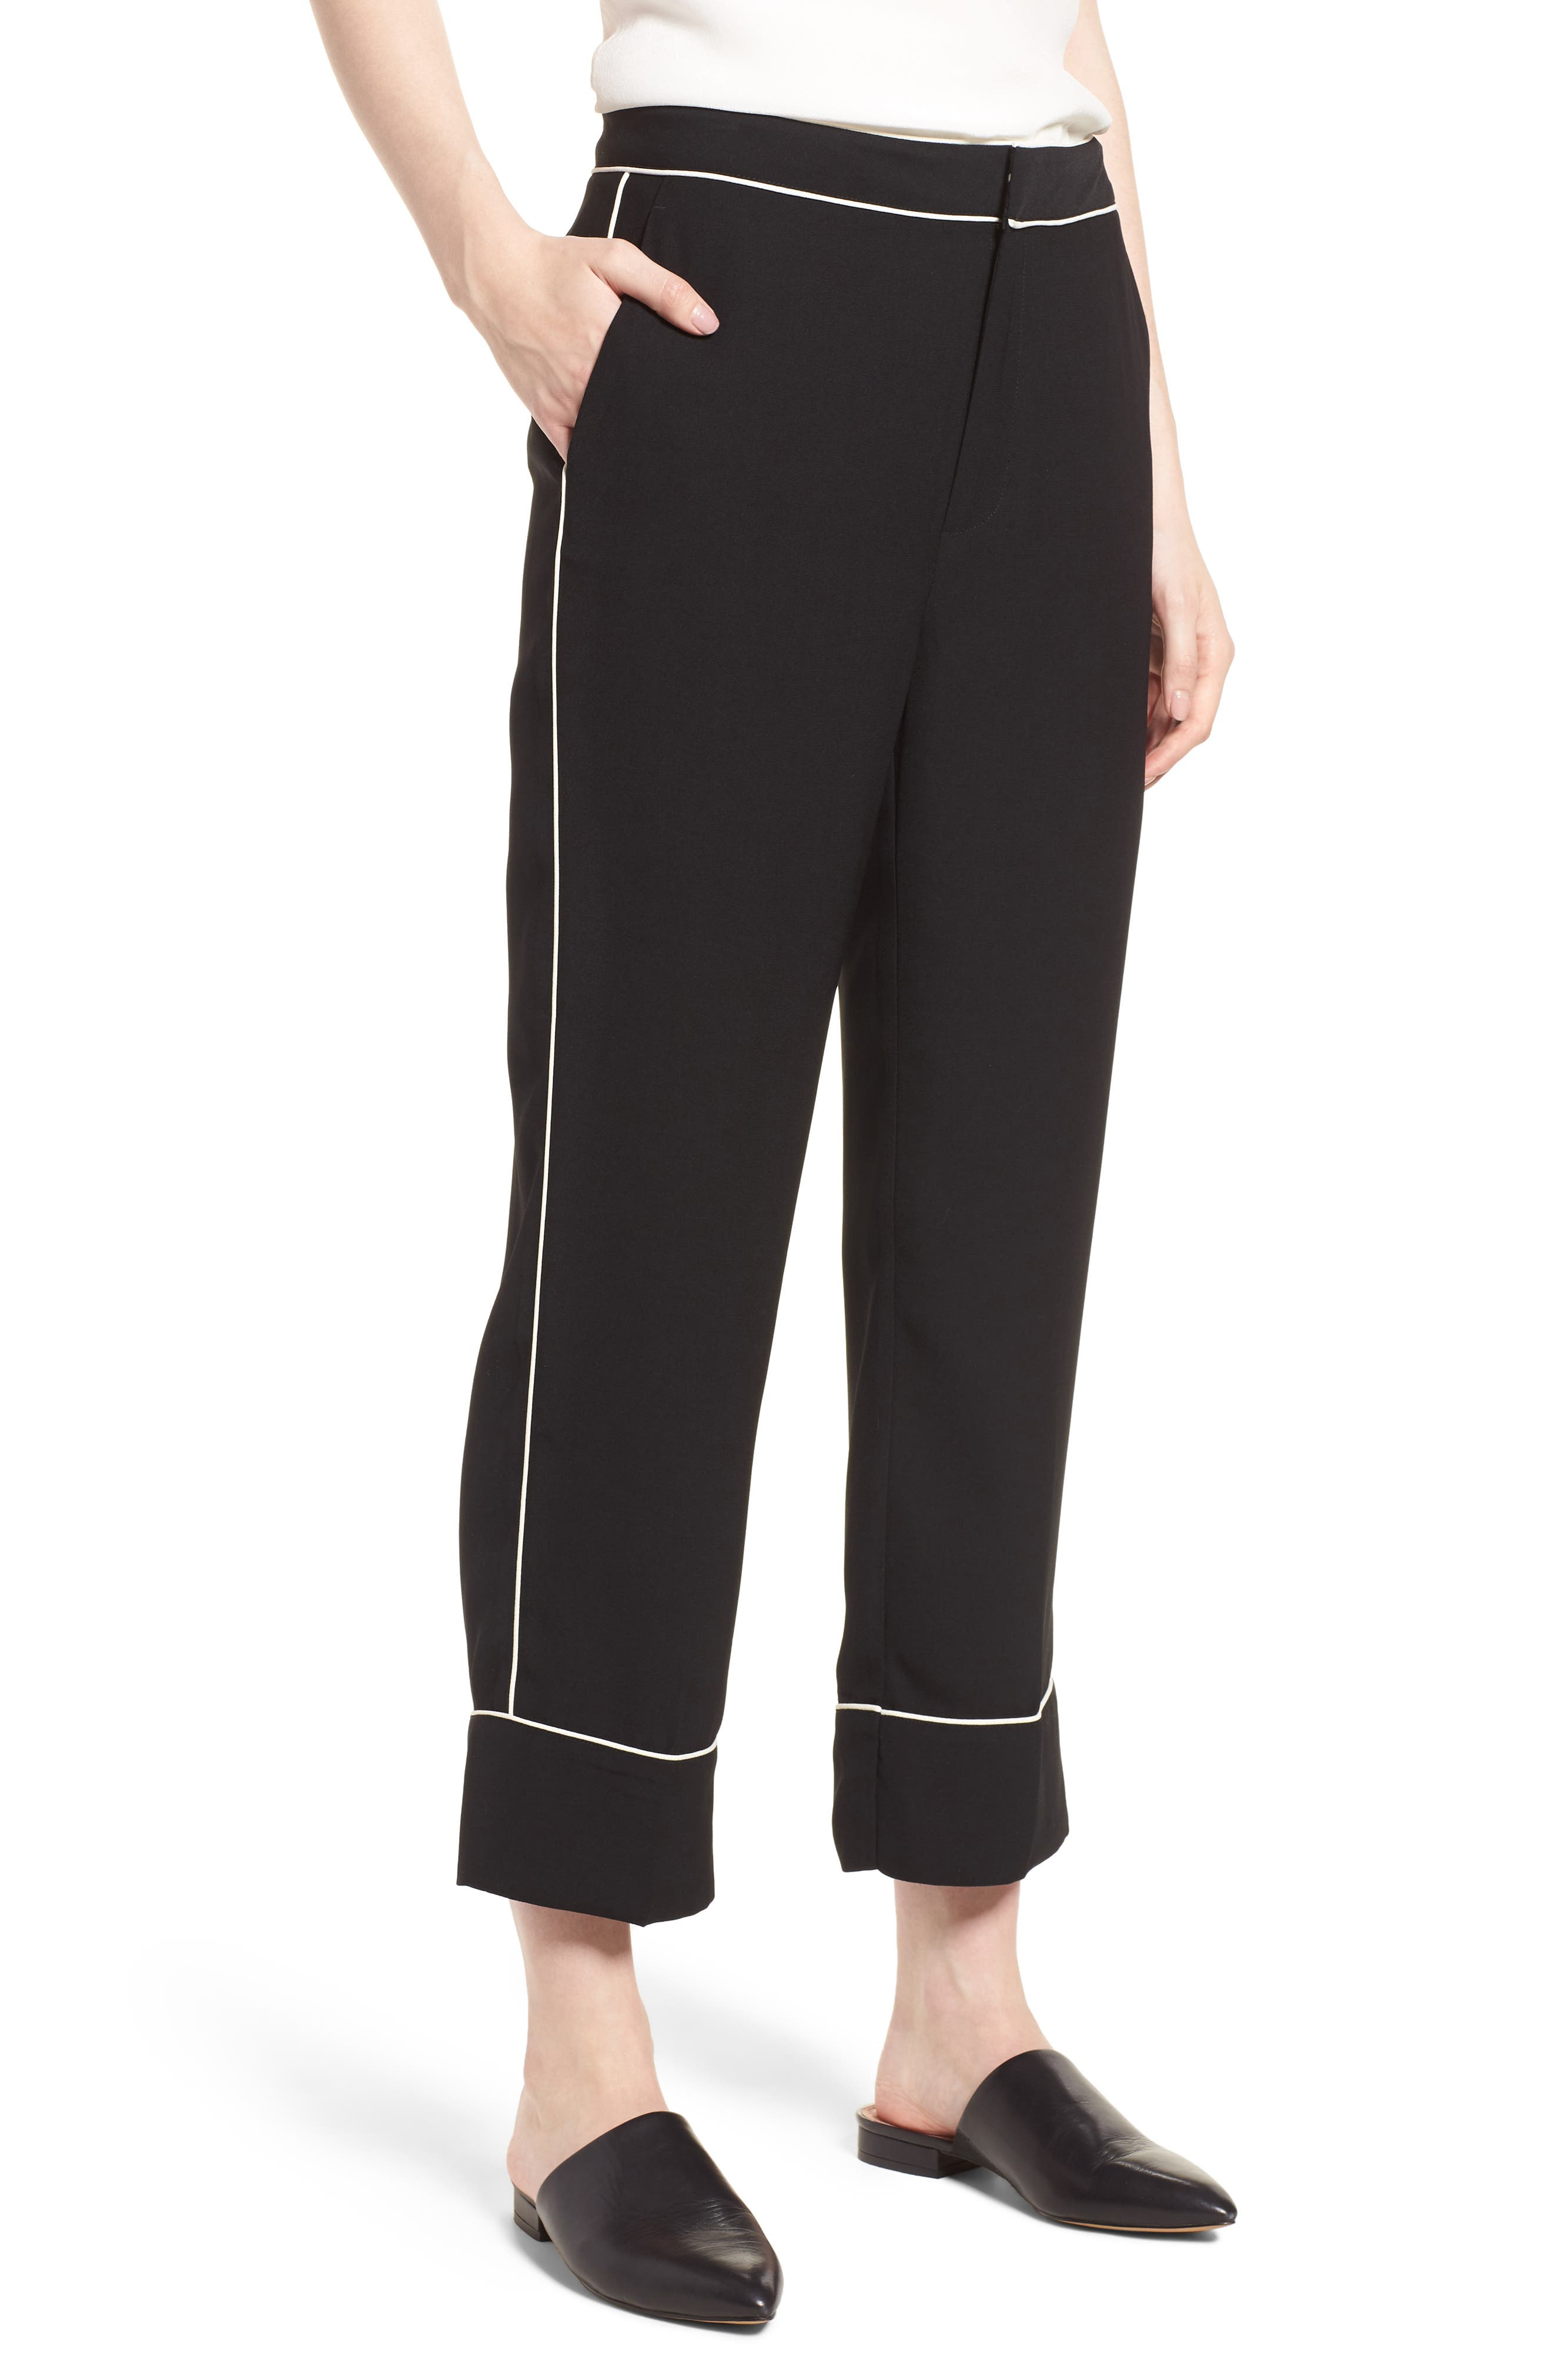 Ankle Pants,                         Main,                         color, Black/ Bright White Piping